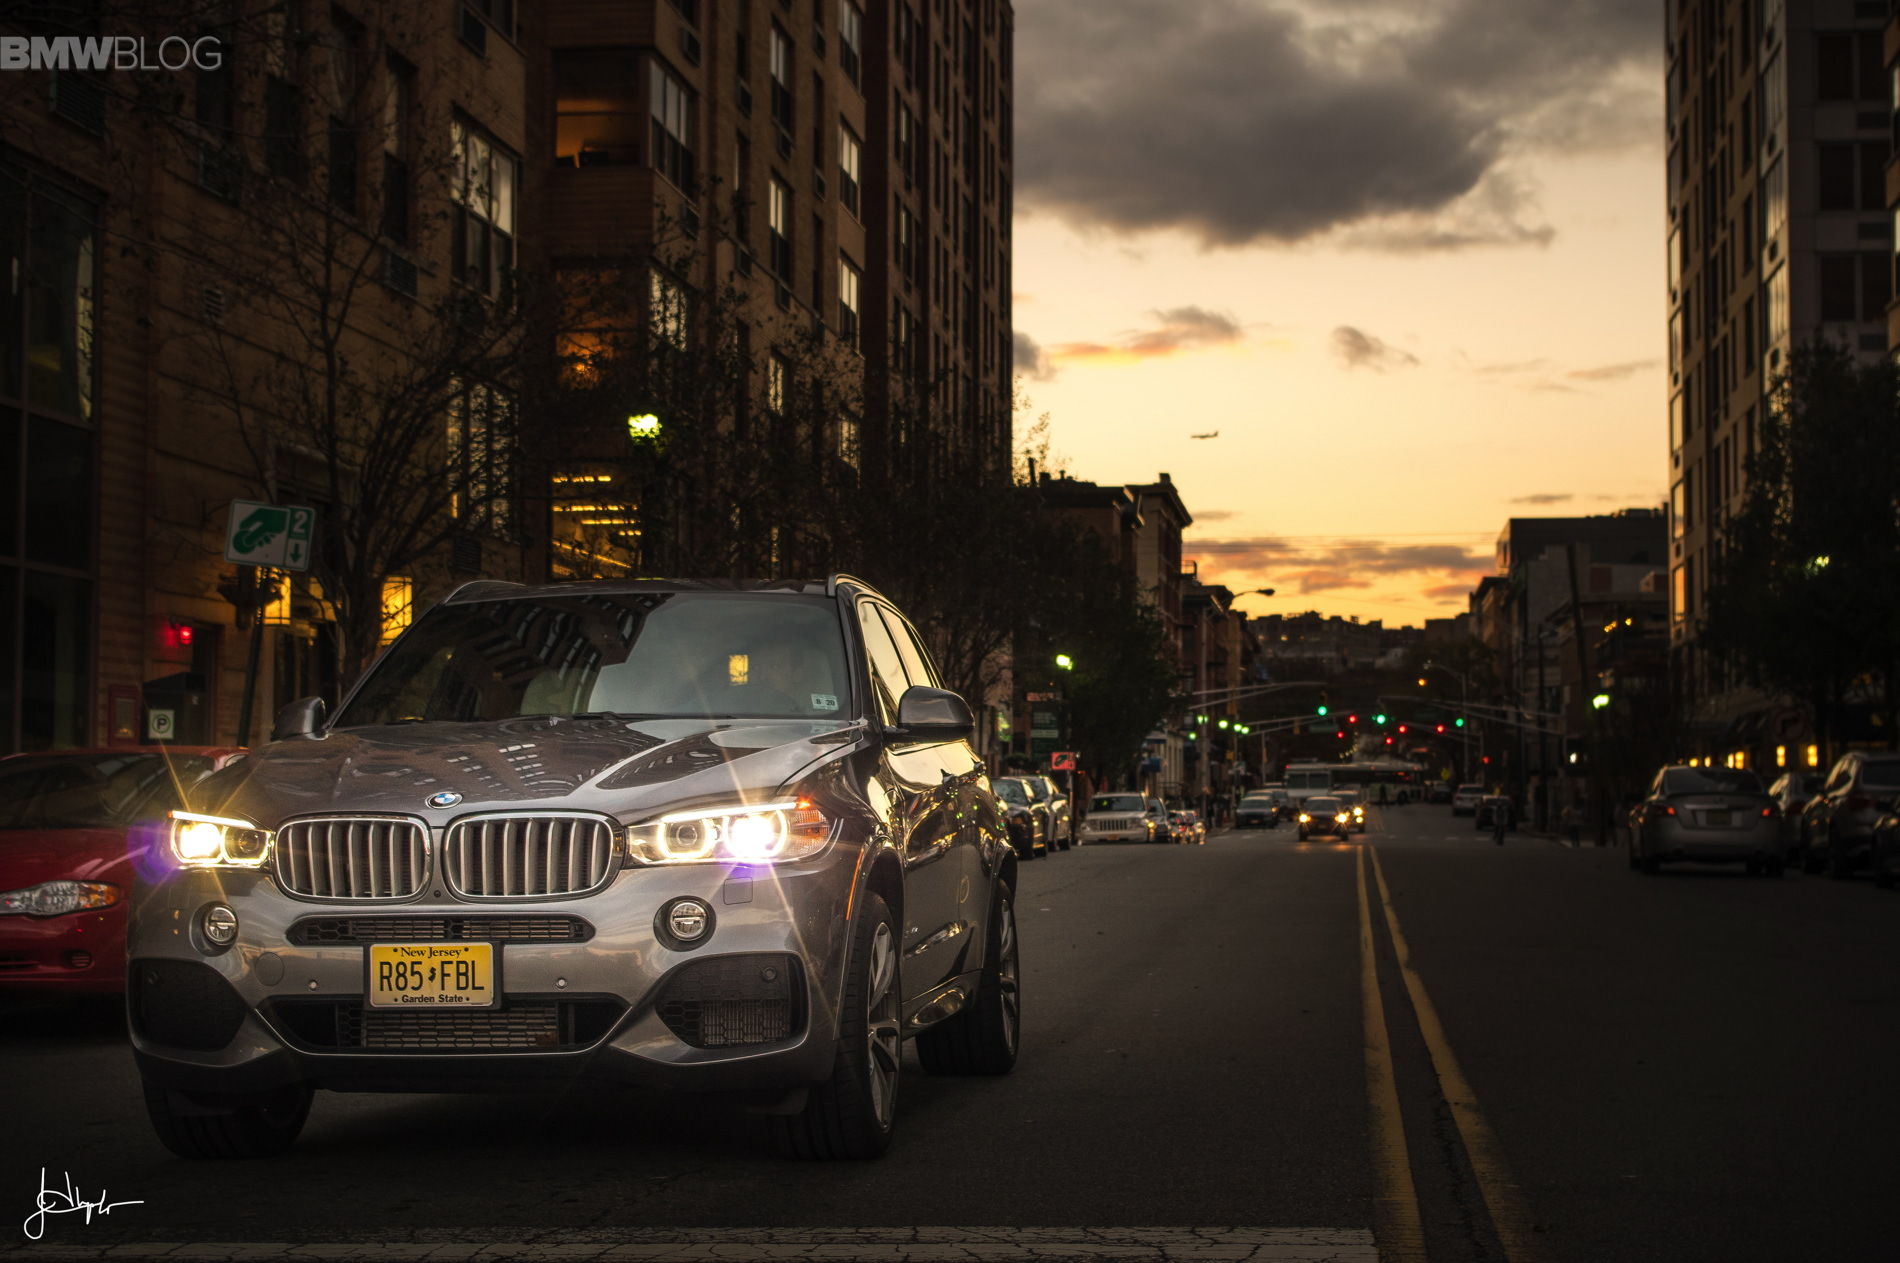 2015 BMW X5 xDrive40e test drive 41